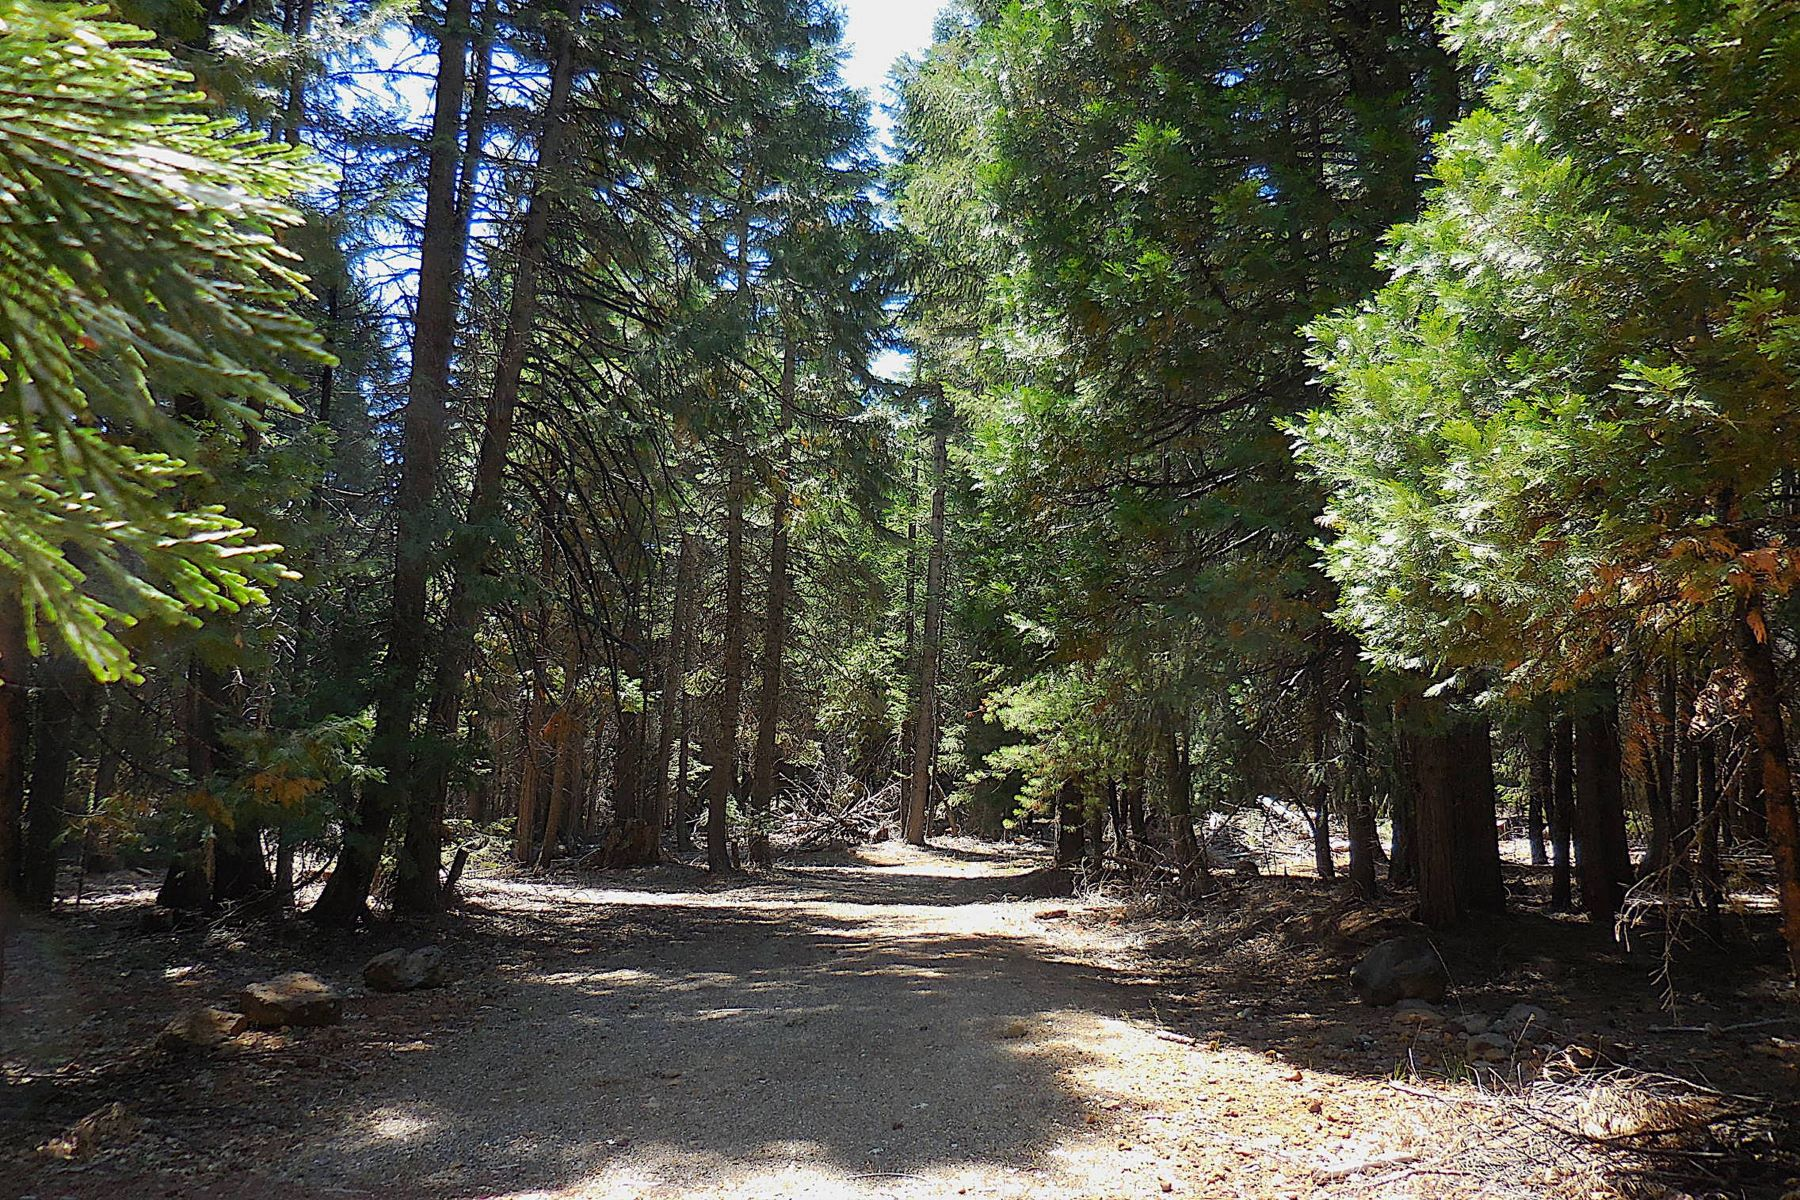 Land for Sale at Private 2 Acre Parcel in the Forest Lot 61 Pony Express Shingletown, California 96088 United States